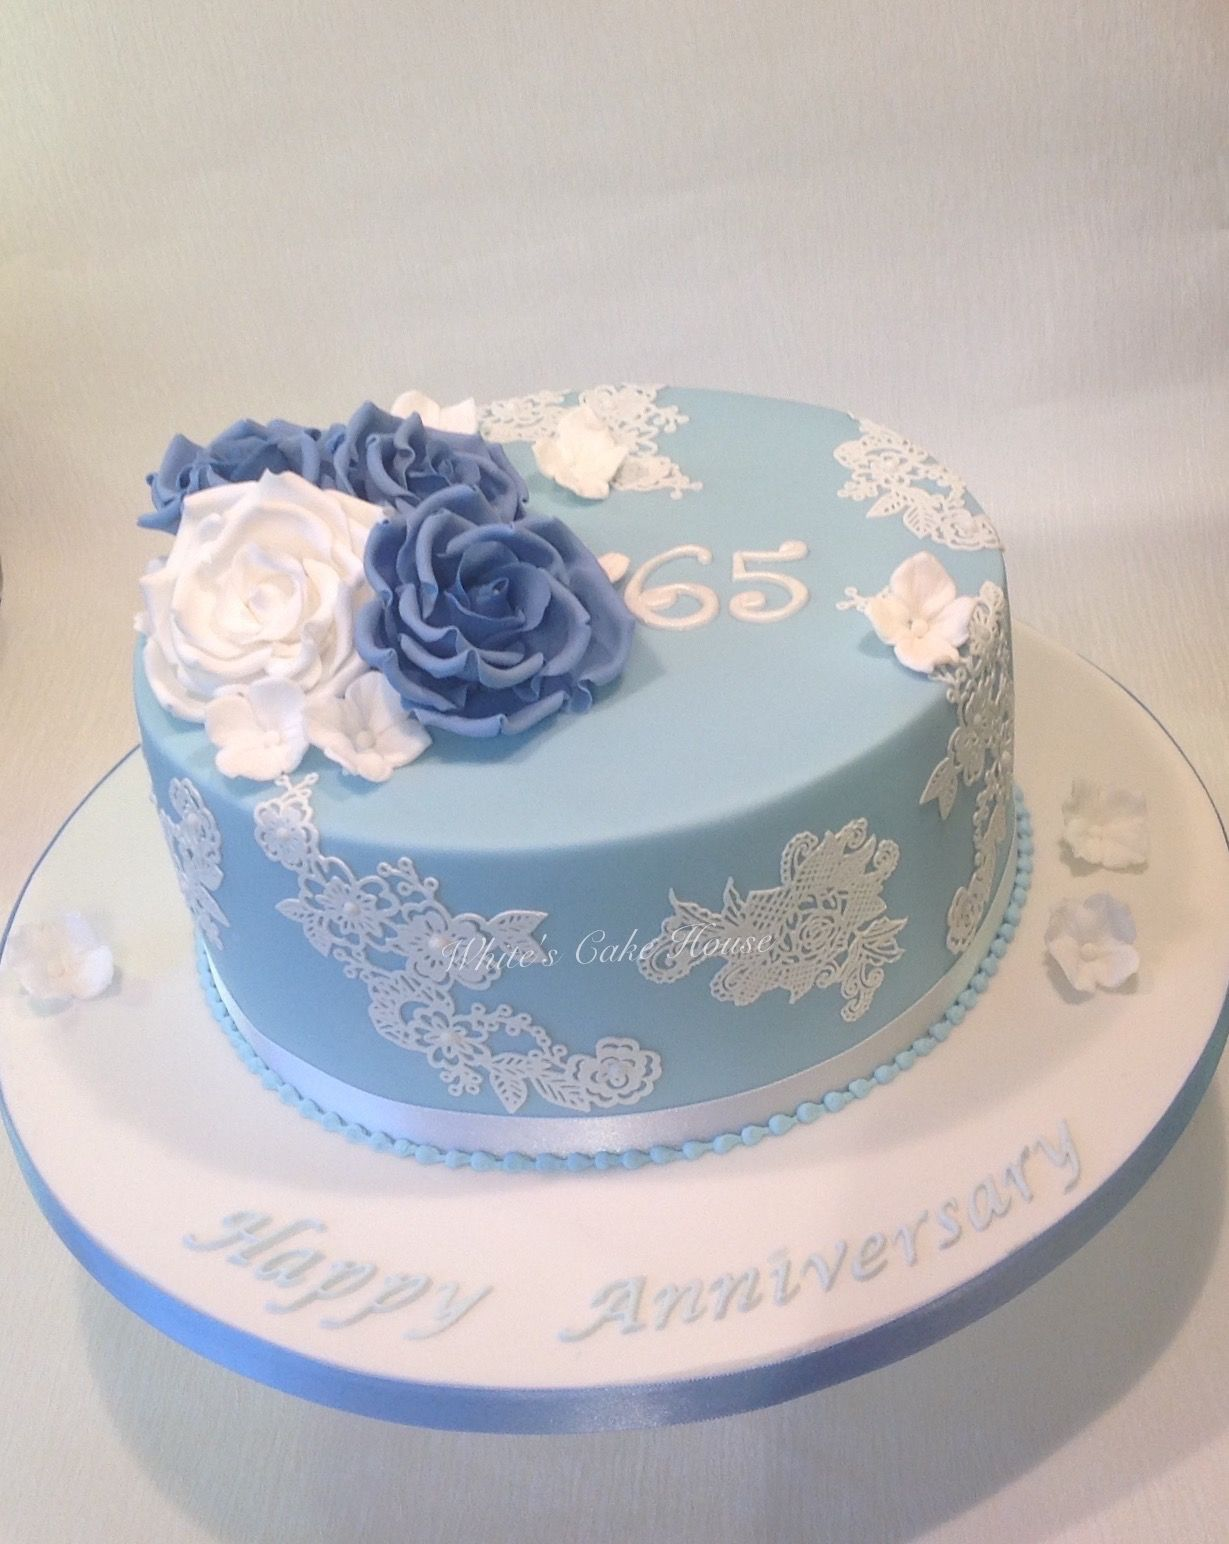 Blue sapphire anniversary cake with roses Anniversary